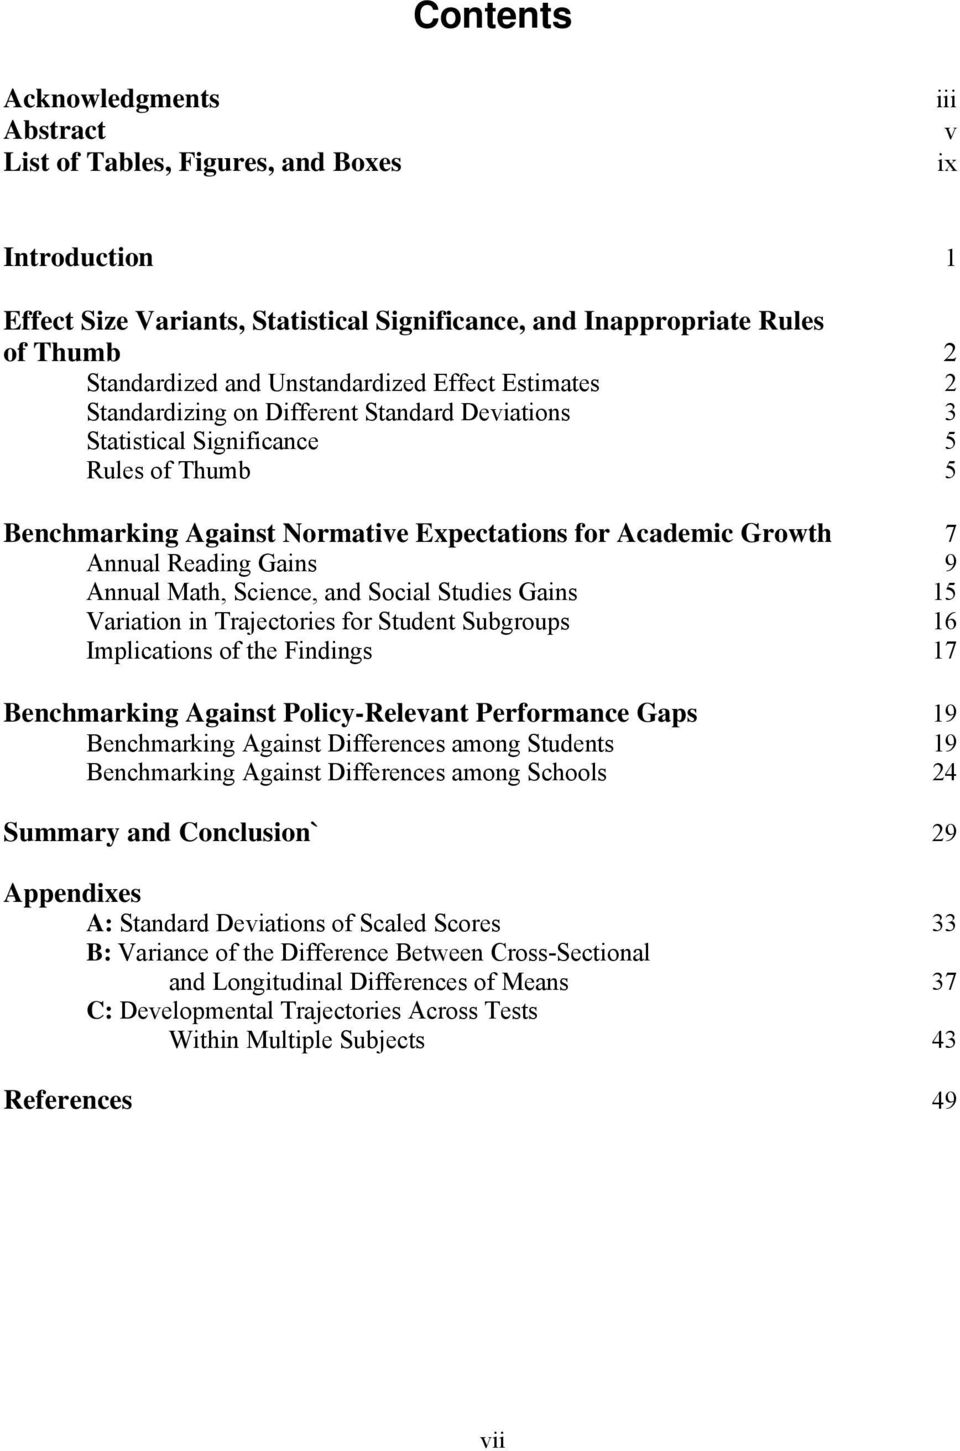 nnual Math, Science, and Social Studies Gains 5 iation in Trajectories for Student Subgroups 6 Implications of the Findings 7 Benchmarking gainst Policy-Relevant Performance Gaps 9 Benchmarking